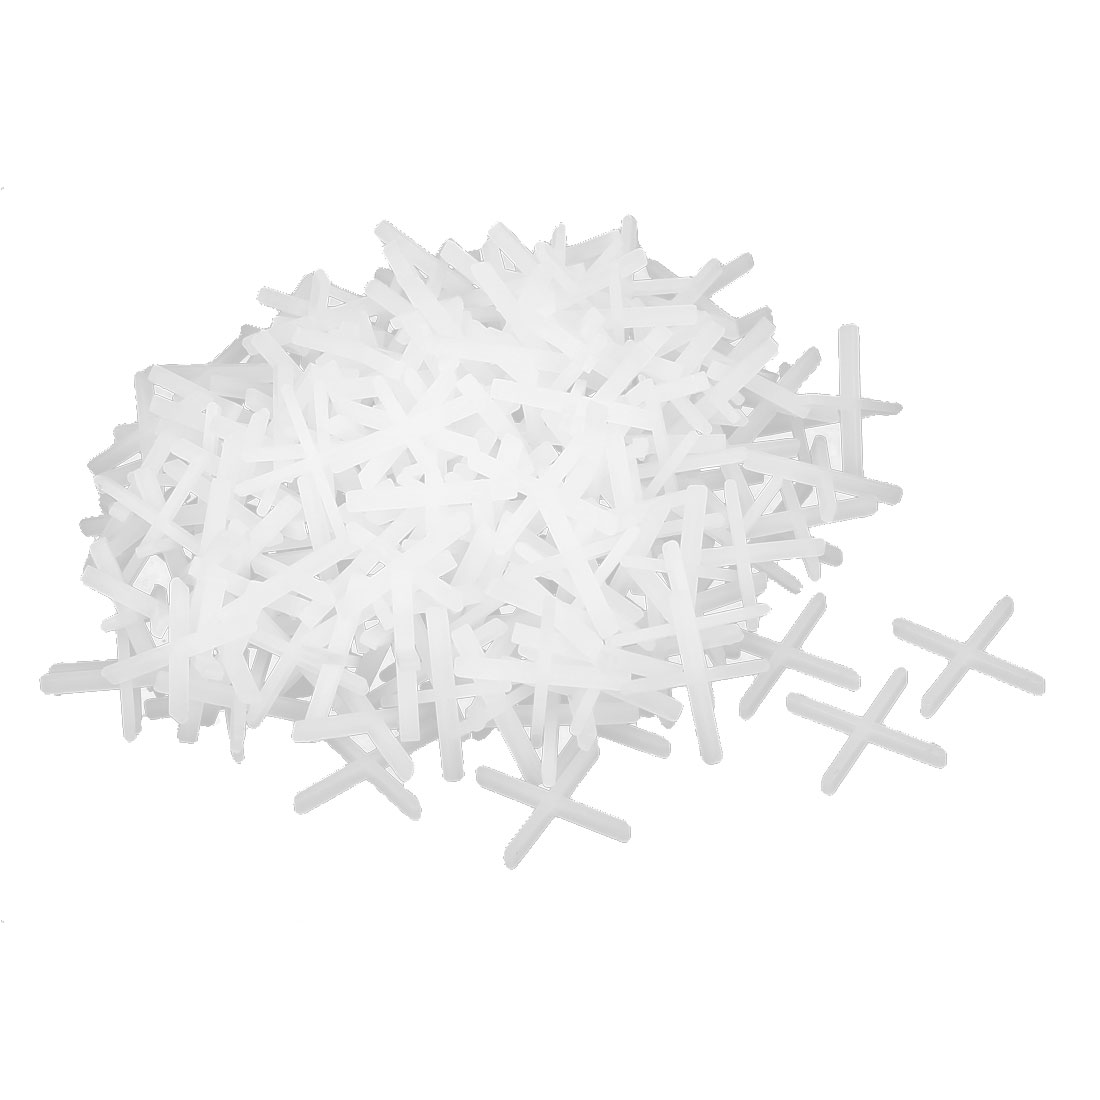 Wall Floor Tile Plastic Cross Spacer 1.5mm White 200pcs